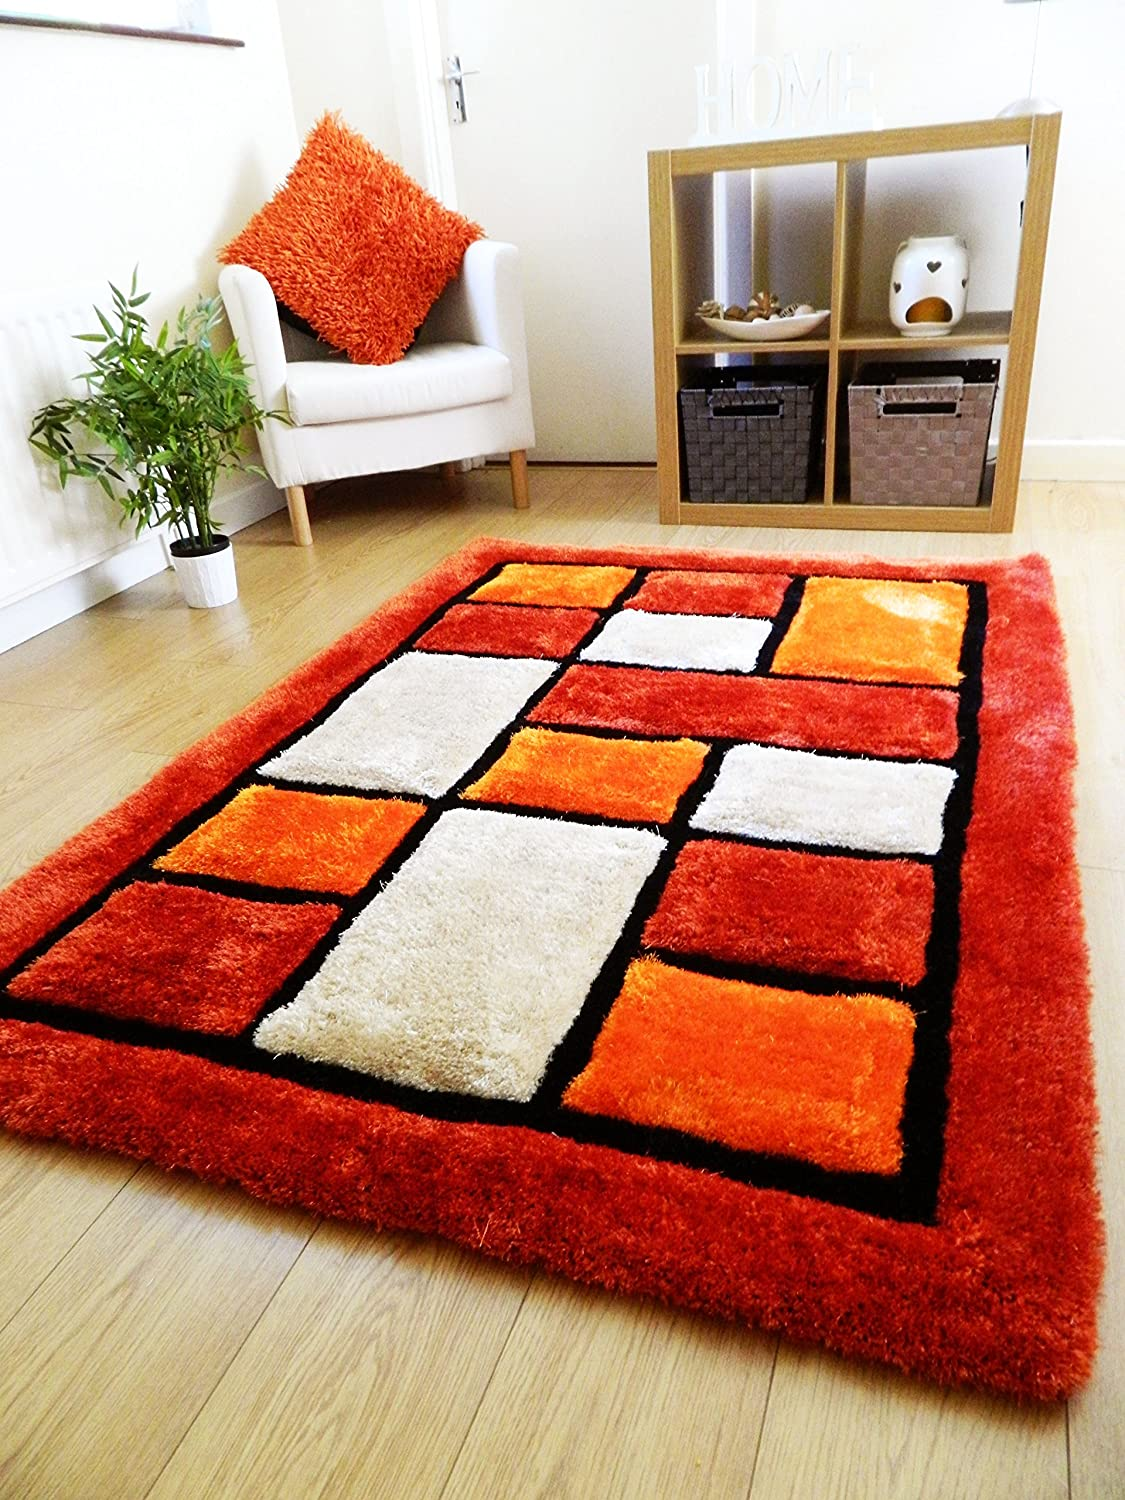 Rugs Home, Furniture & DIY MODERN  STYLISH RED  BLACK RUG THICK QUALITY SOFT HANDTUFTED RUGS  VARIOUS SIZES